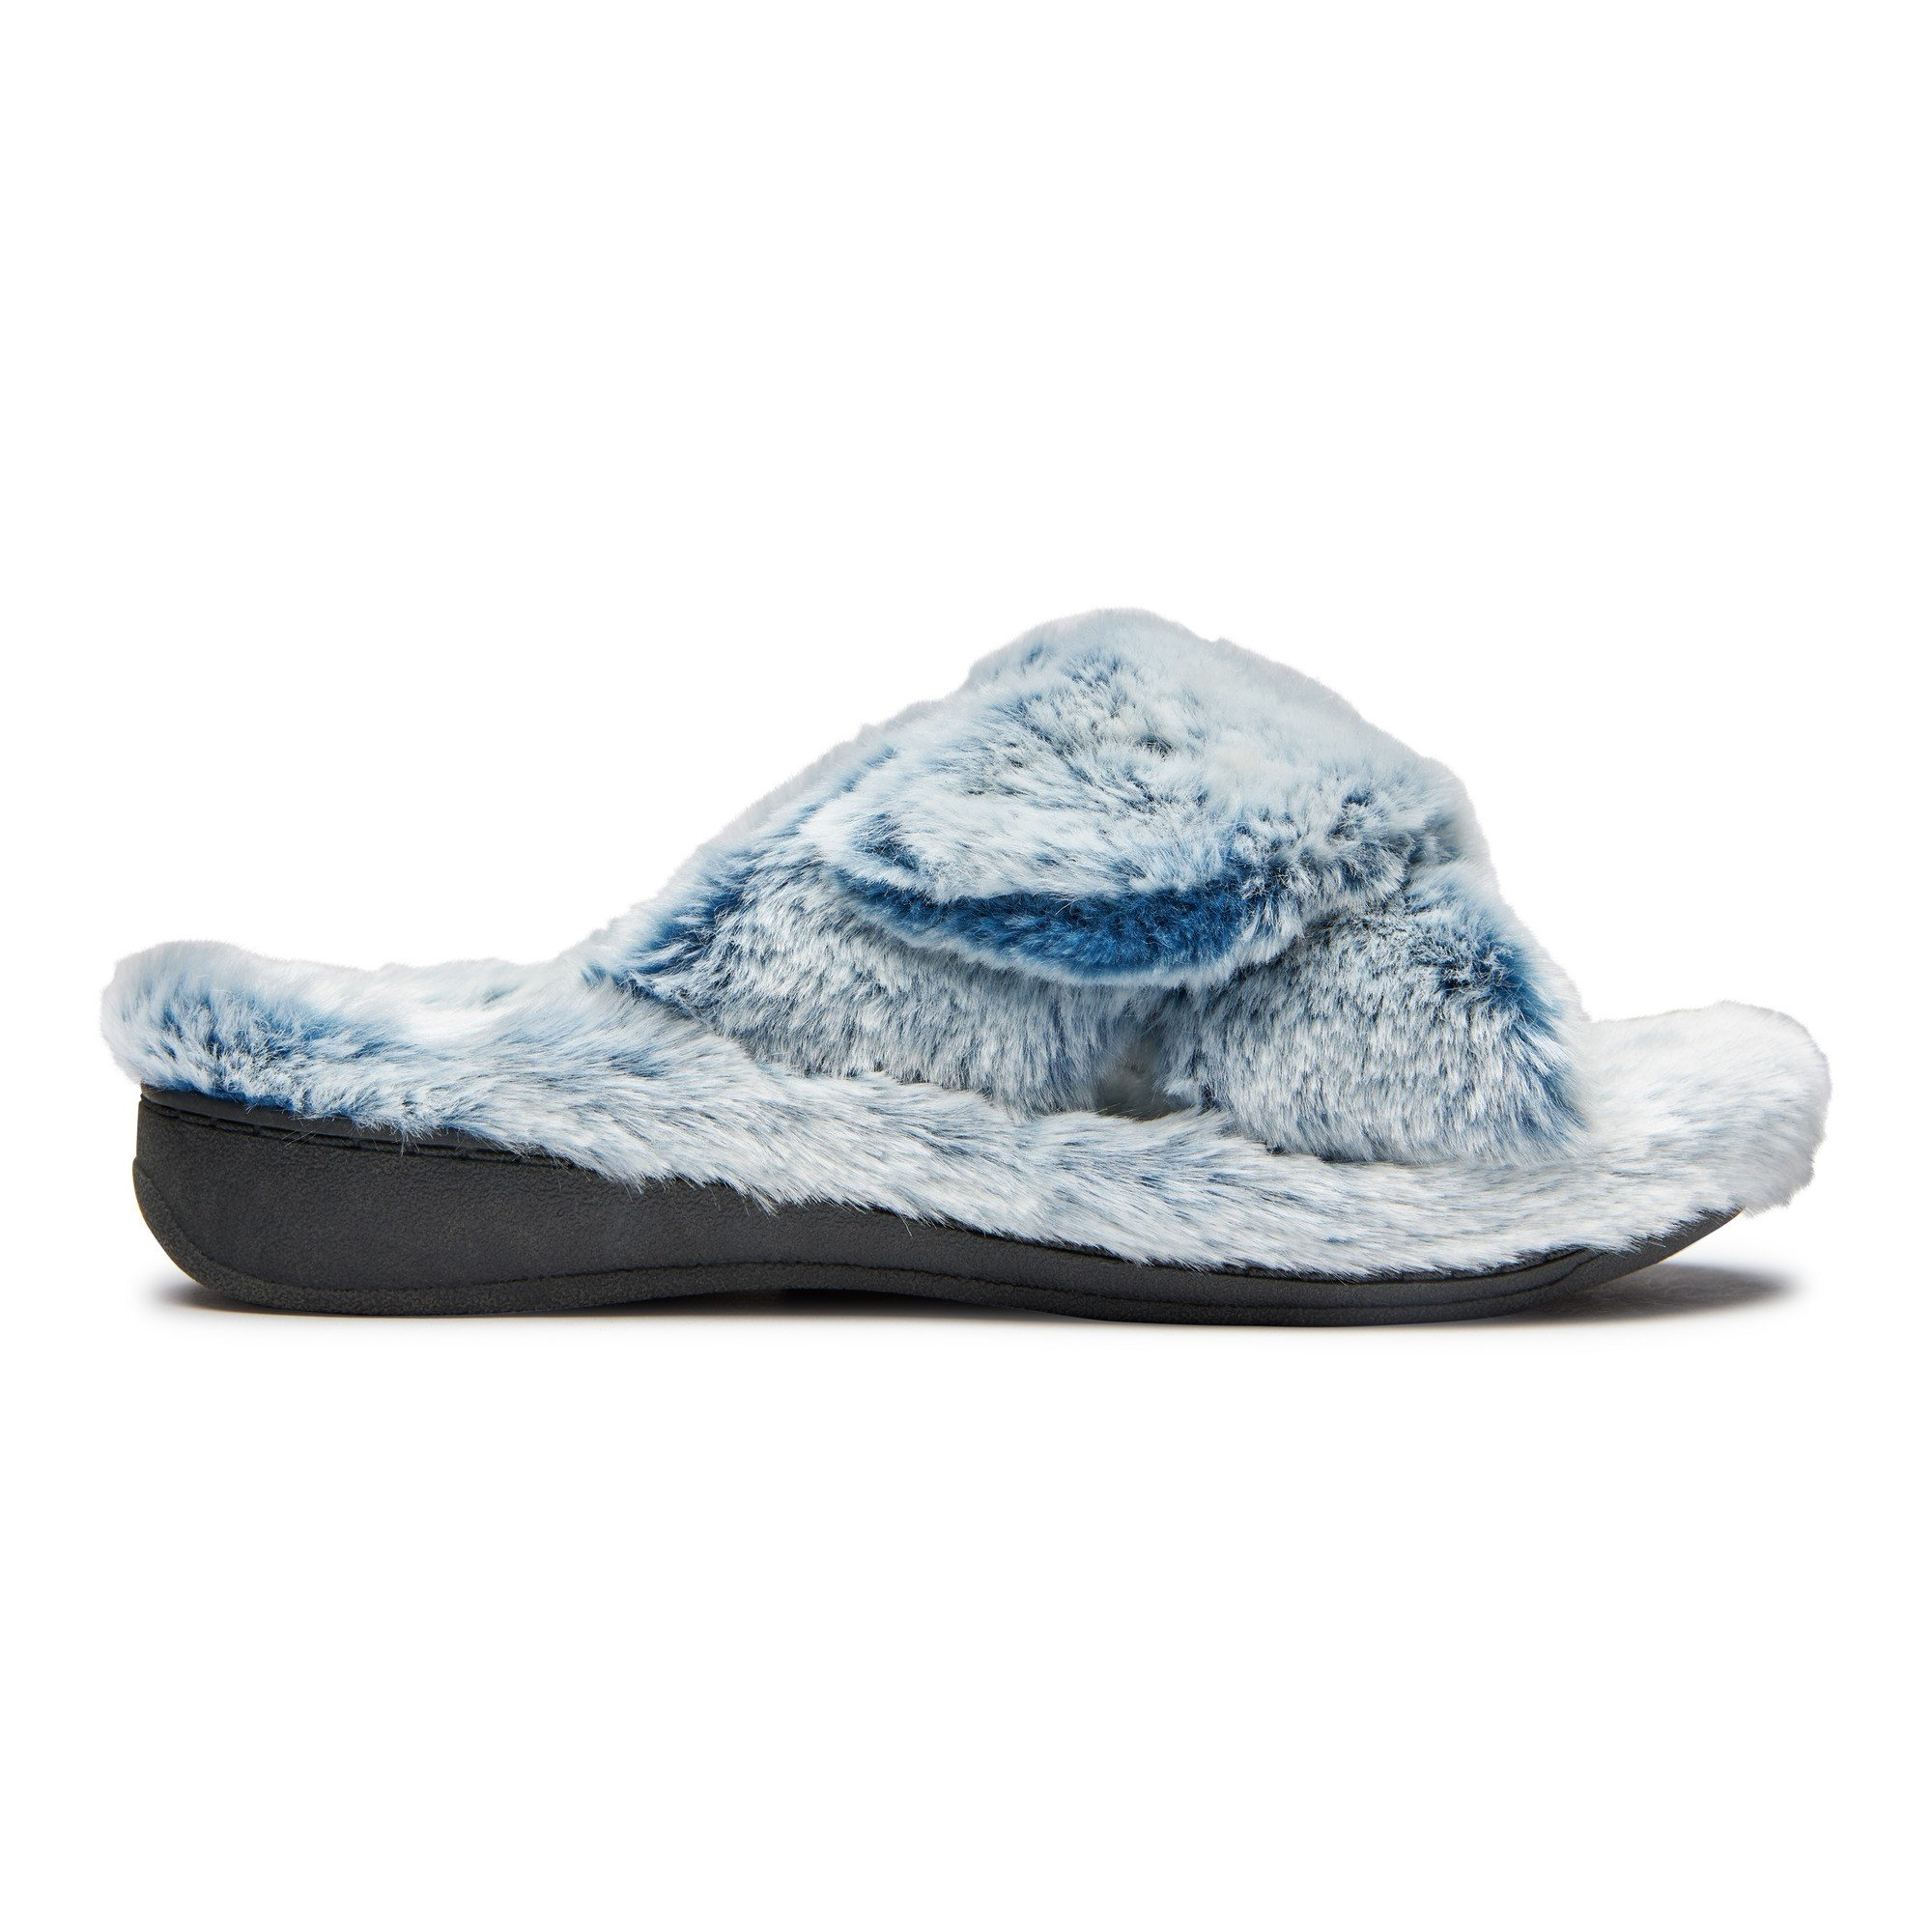 Vionic Relax Plush Slippers - Women's